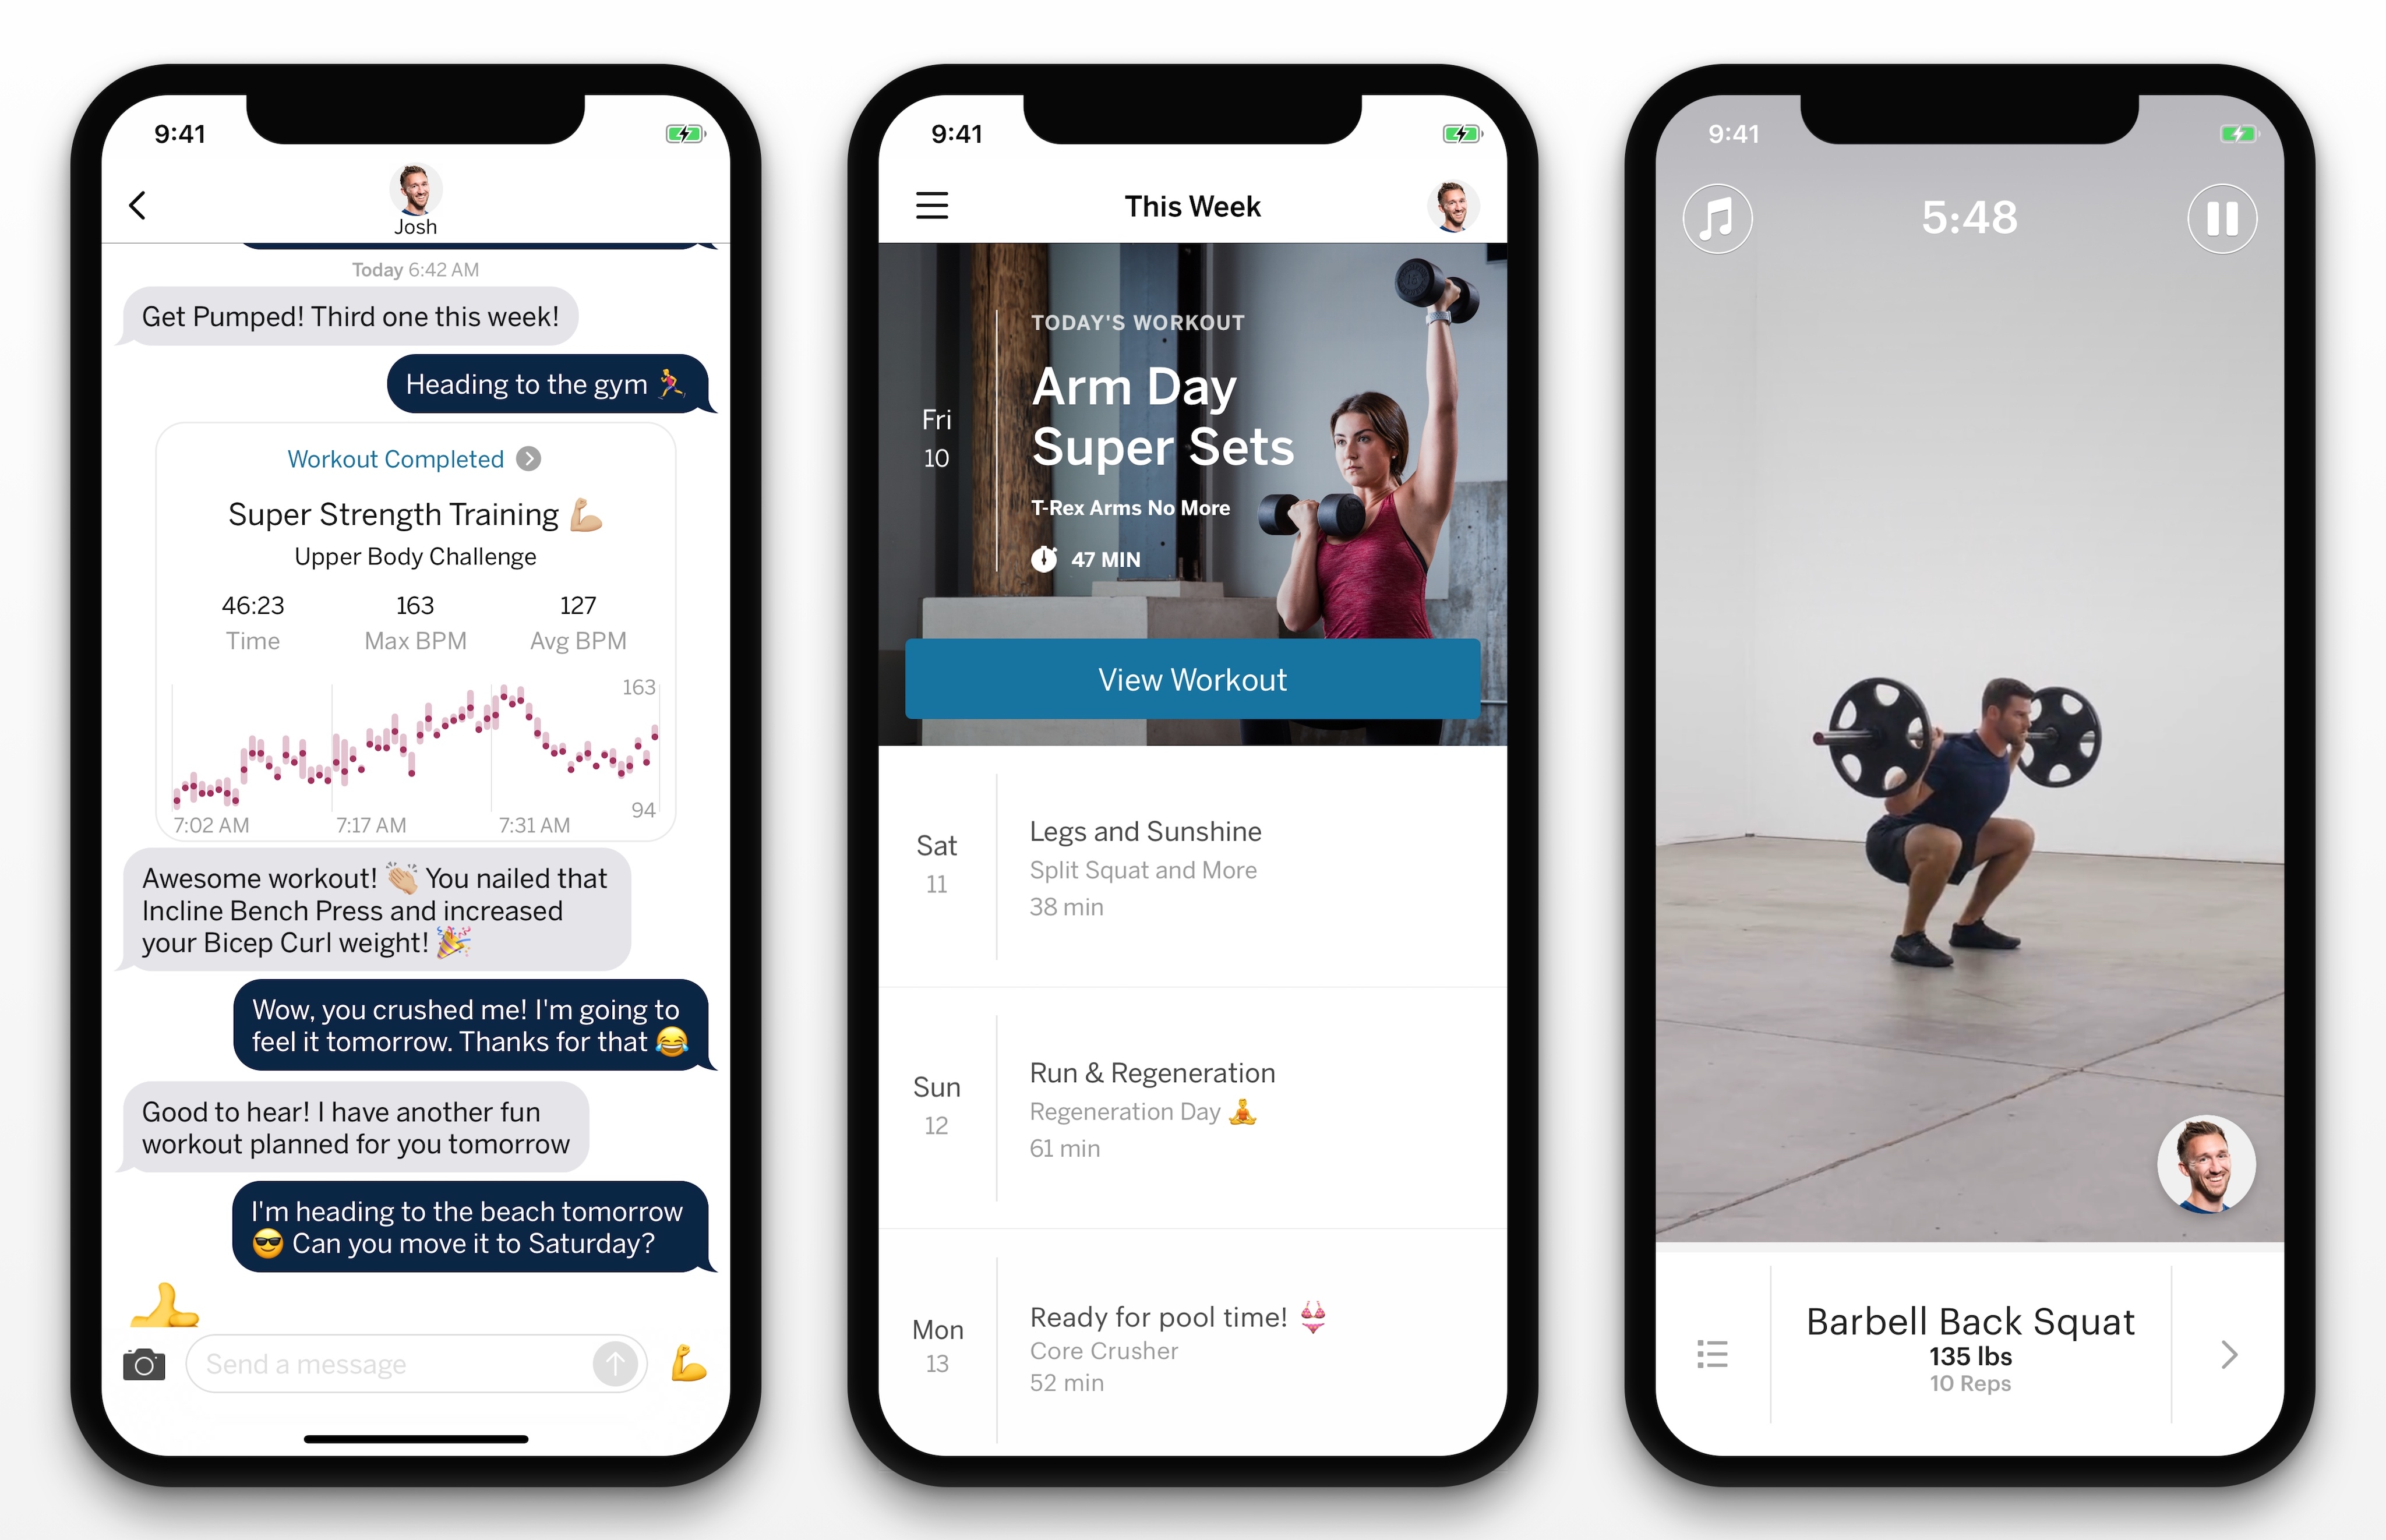 workout app development, Workout App Development: 4 Intense Features of JEFIT & Future (Top Workout Apps) Every Fitness Startups Should Consider